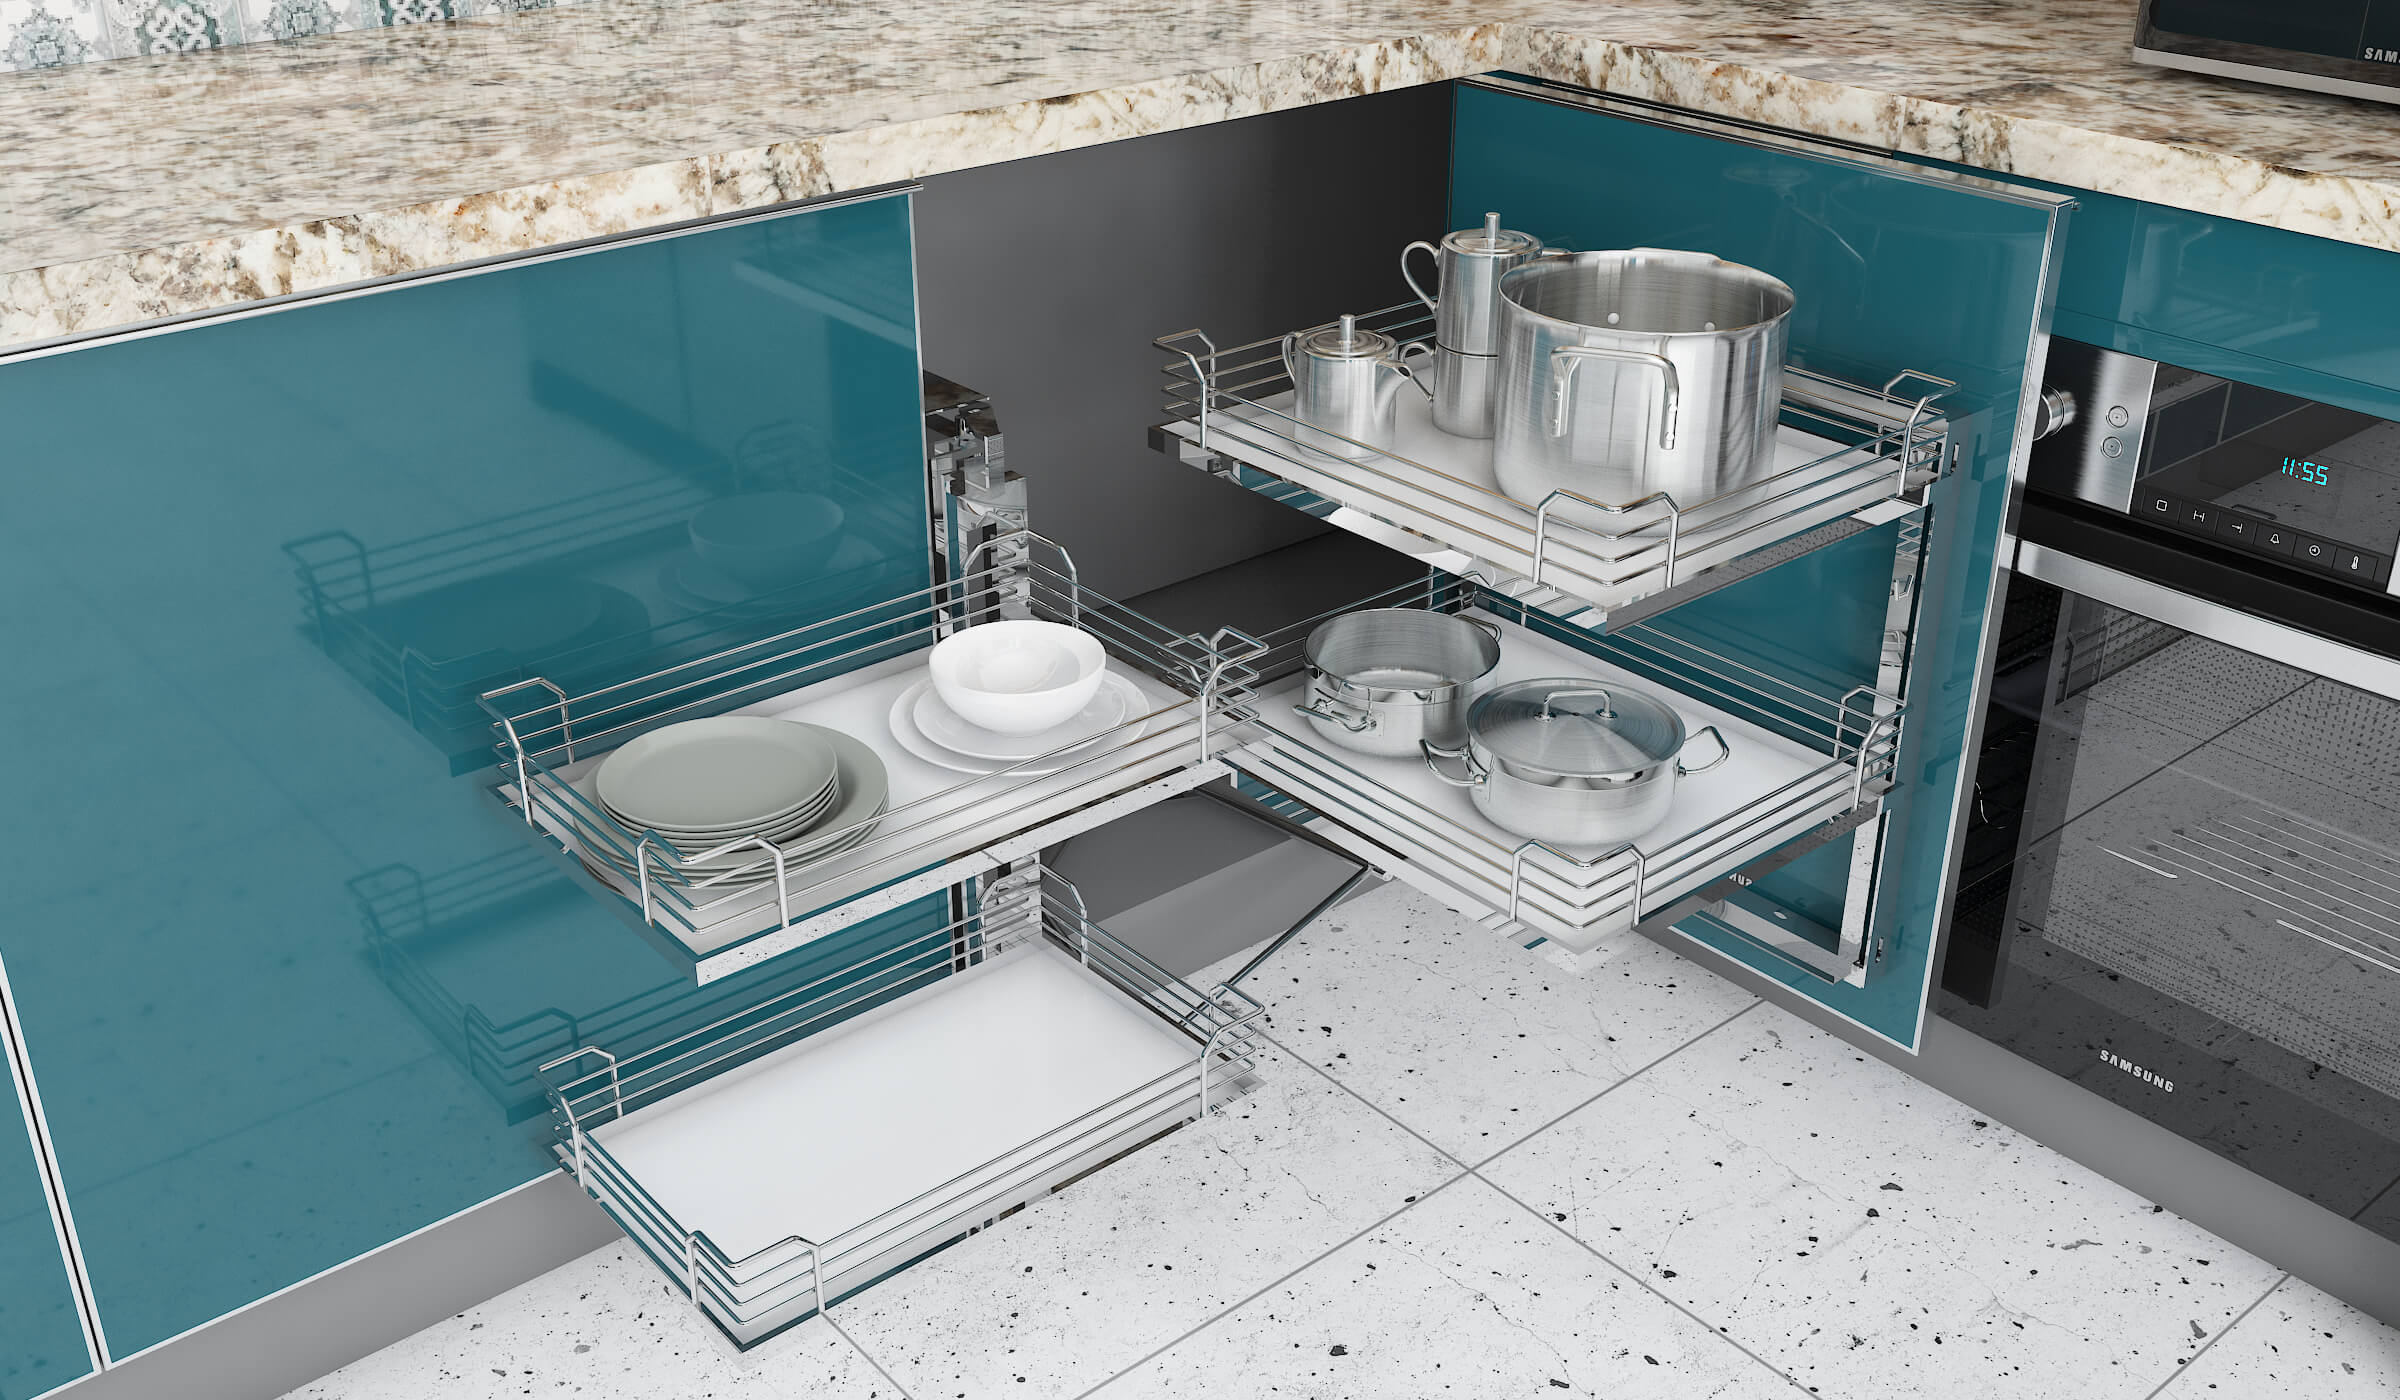 Maximize Storage Space in Your Modular Kitchen with Magic Pull Outs in kitchen design fir small space